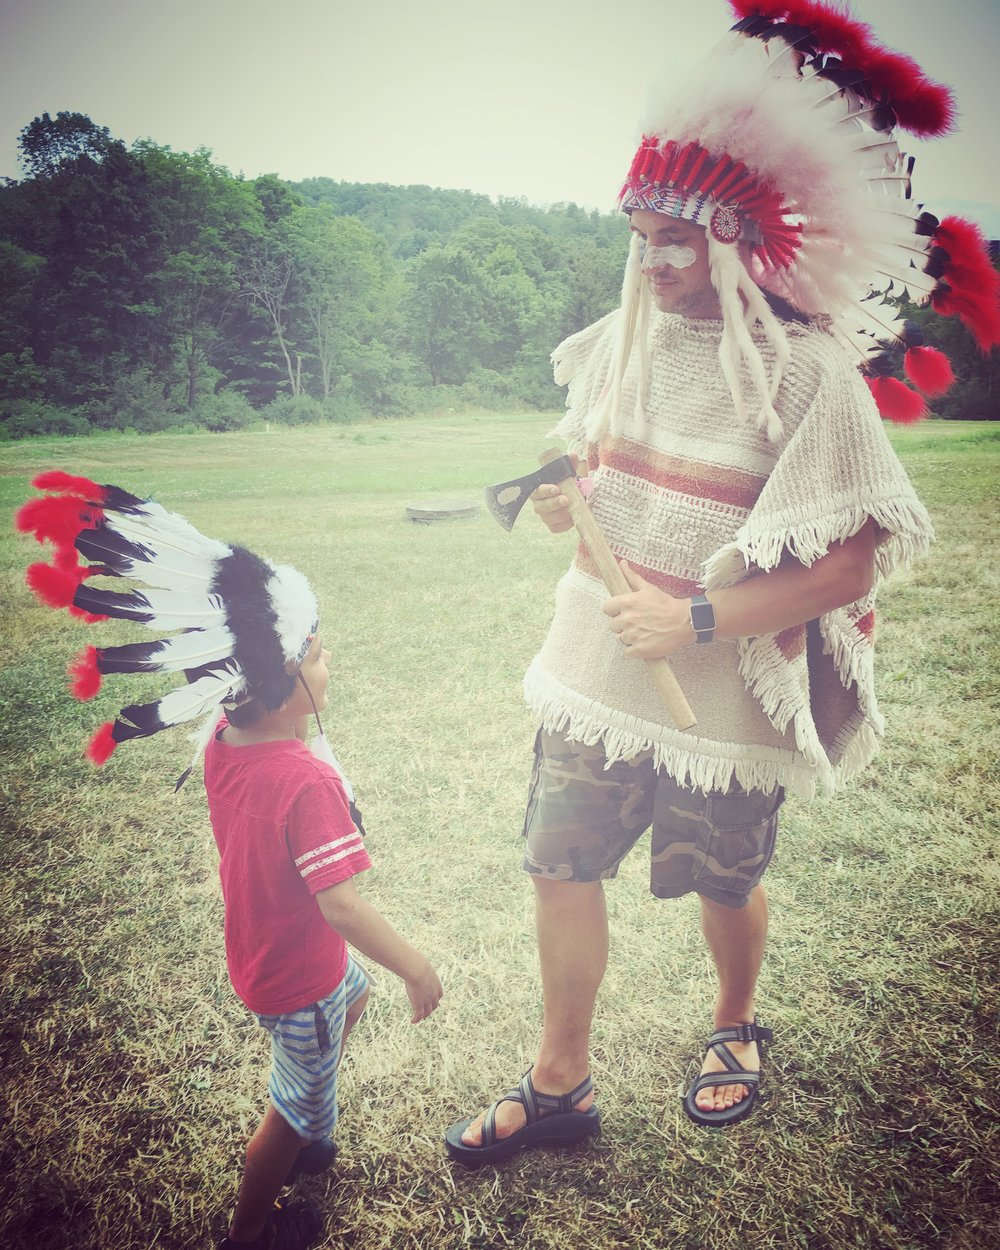 Chief Duane and little Chief (Thad).